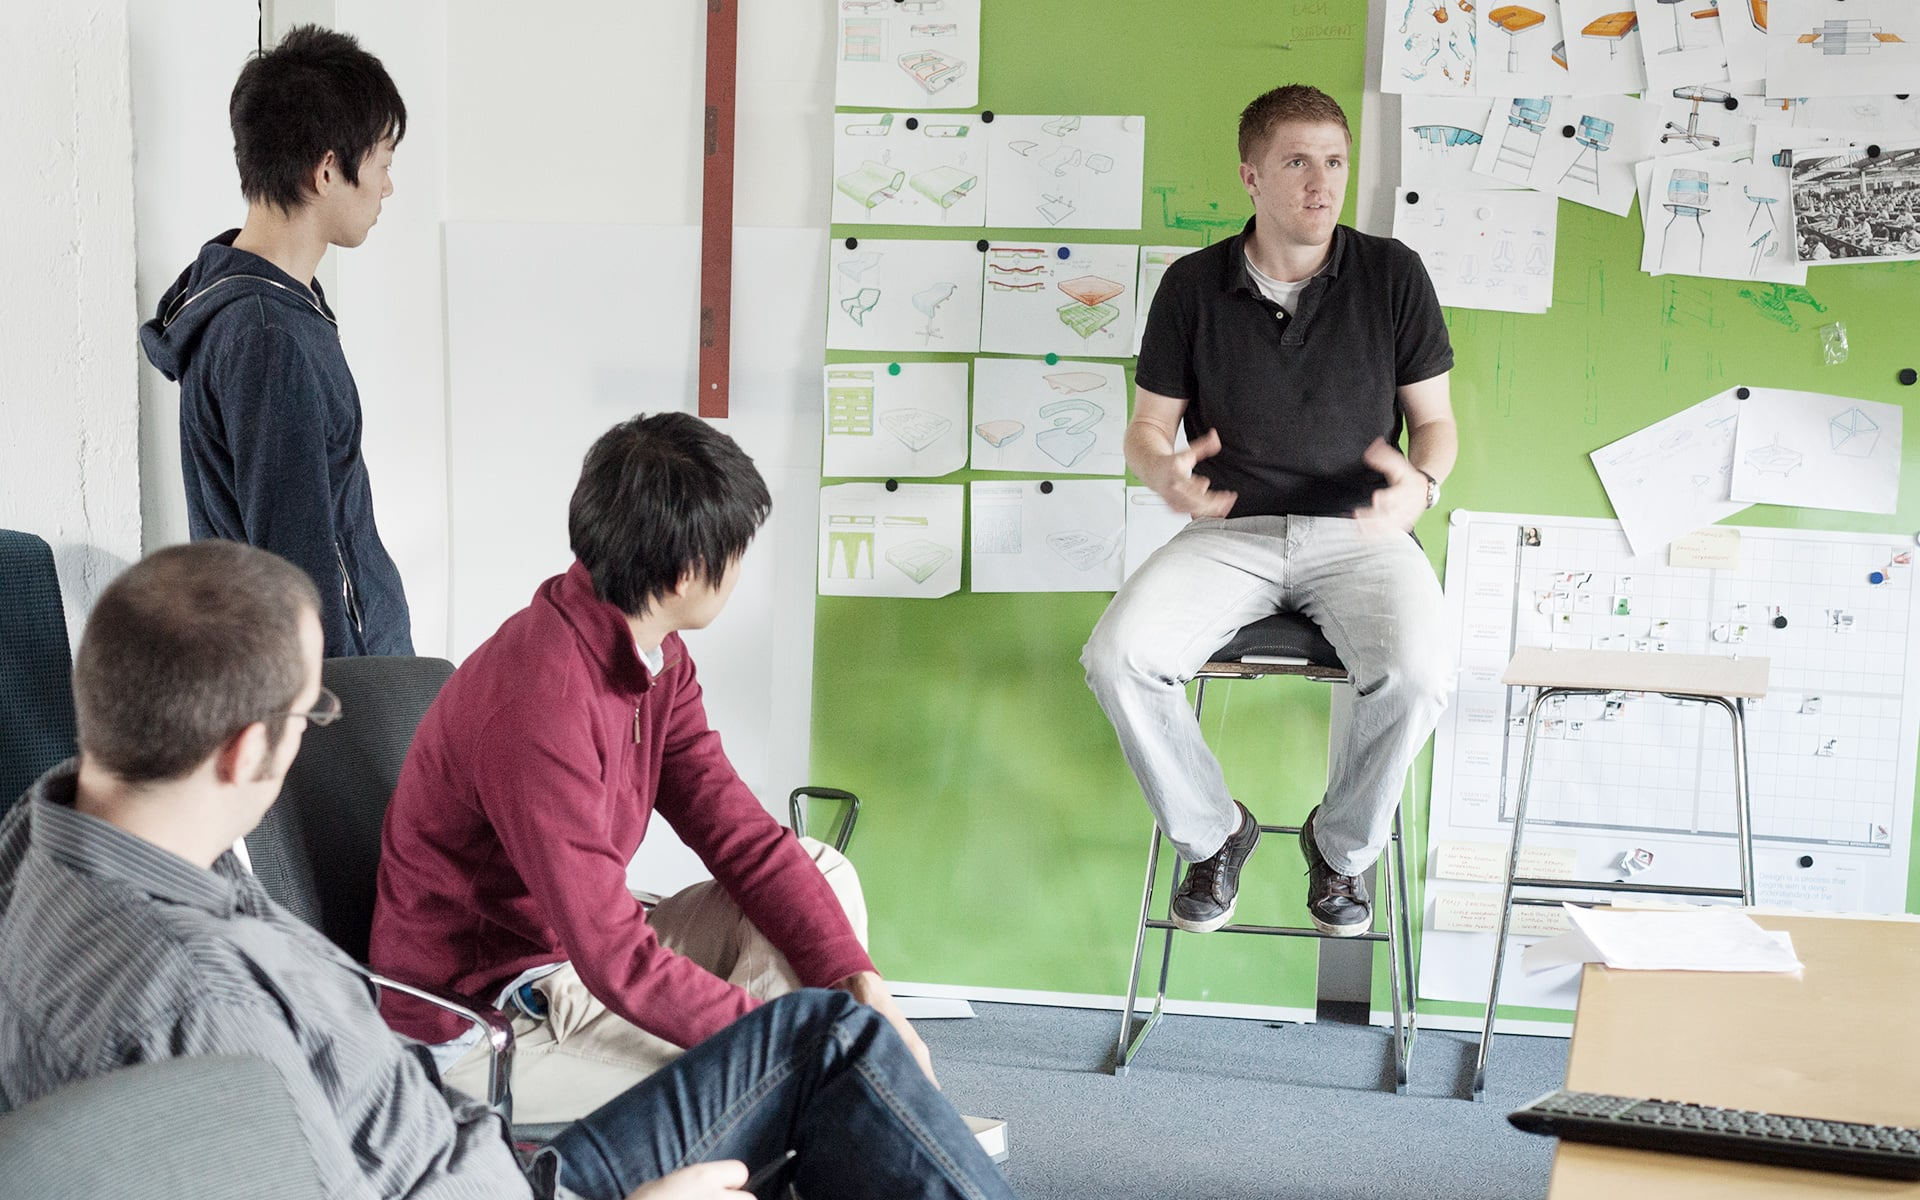 An ITO Design colleague conducts a presentation at a team meeting